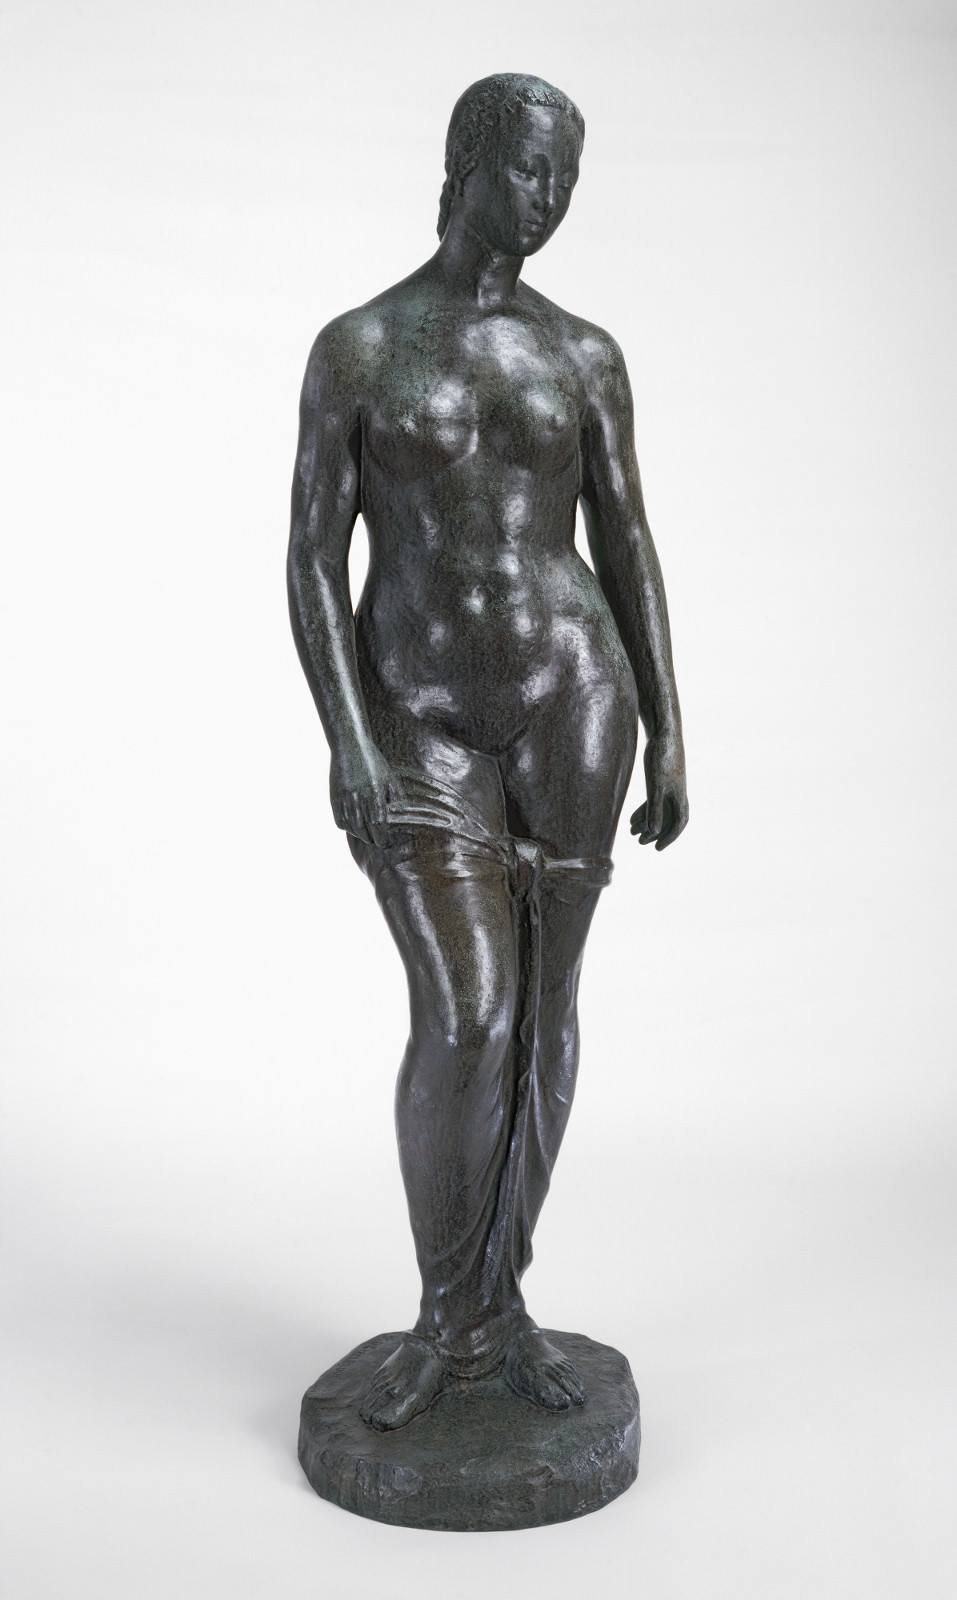 Fig. 3 – Mulher em Pé, Wilhelm Lehmbruck, 1910, bronze, 191.2 x 54 x 39.9 cm. National Gallery of Art, Washington. Fundo Ailsa Mellon Bruce.